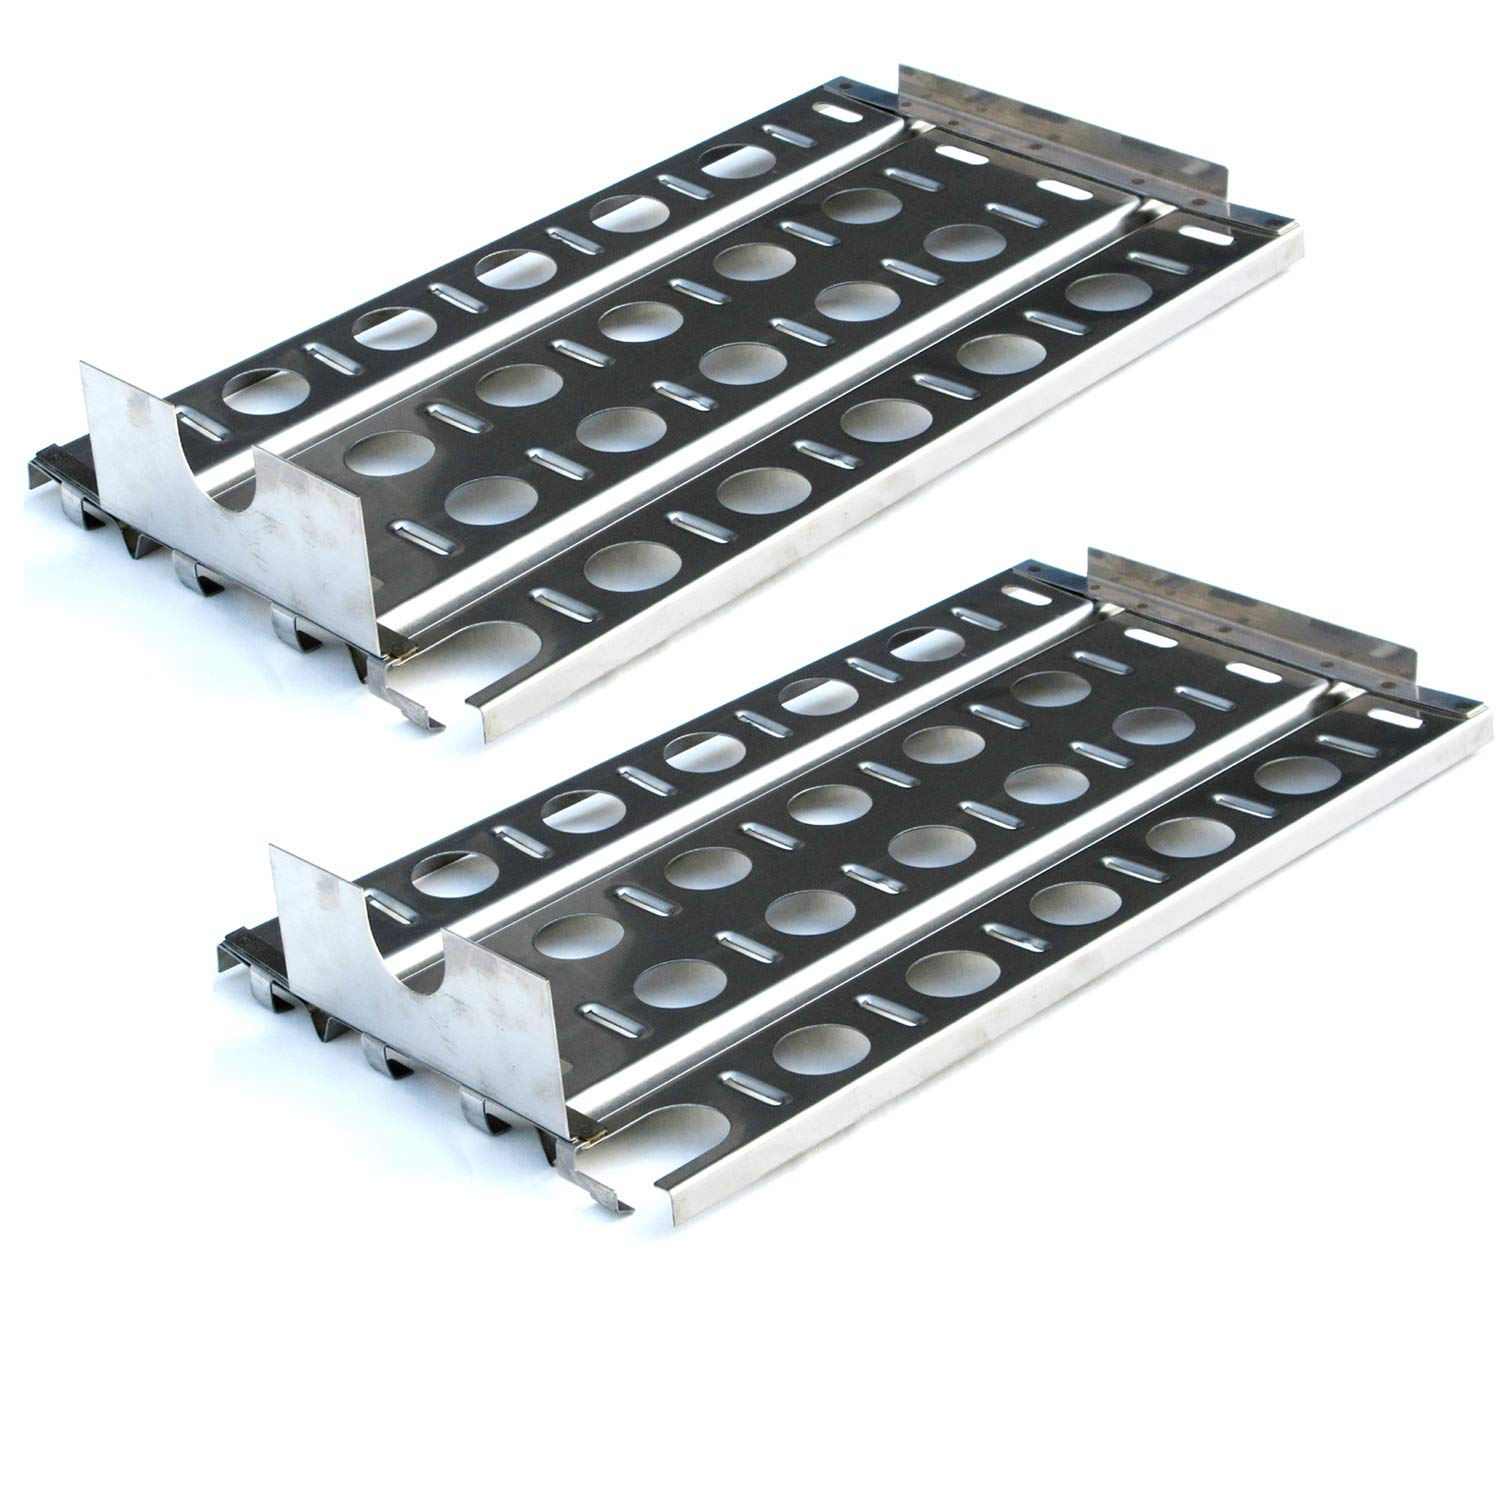 Direct store Parts DP114 (2-pack) Stainless Steel Heat plates Replacement Lynx Gas Grill Models (2) by Direct store